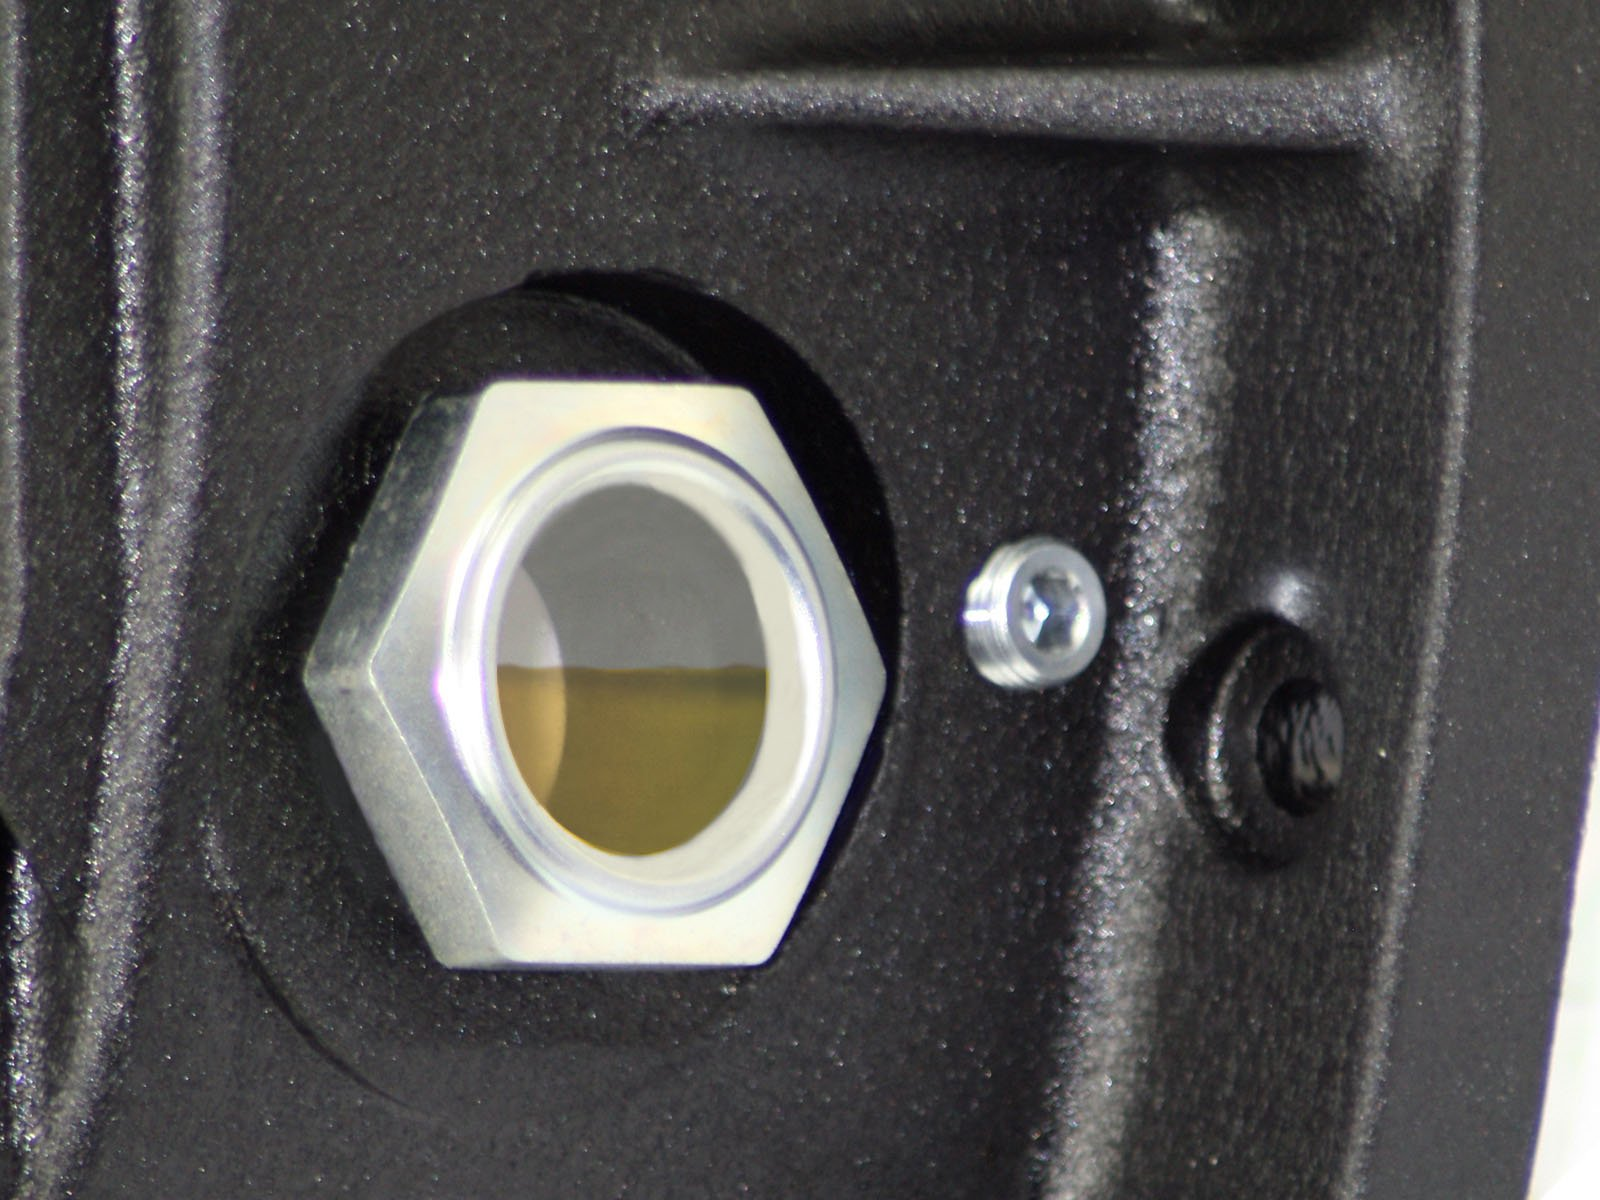 aFe Power 46-70012-WL Pro Series Machined Rear Differential Cover with Gear Oil by aFe Power (Image #5)